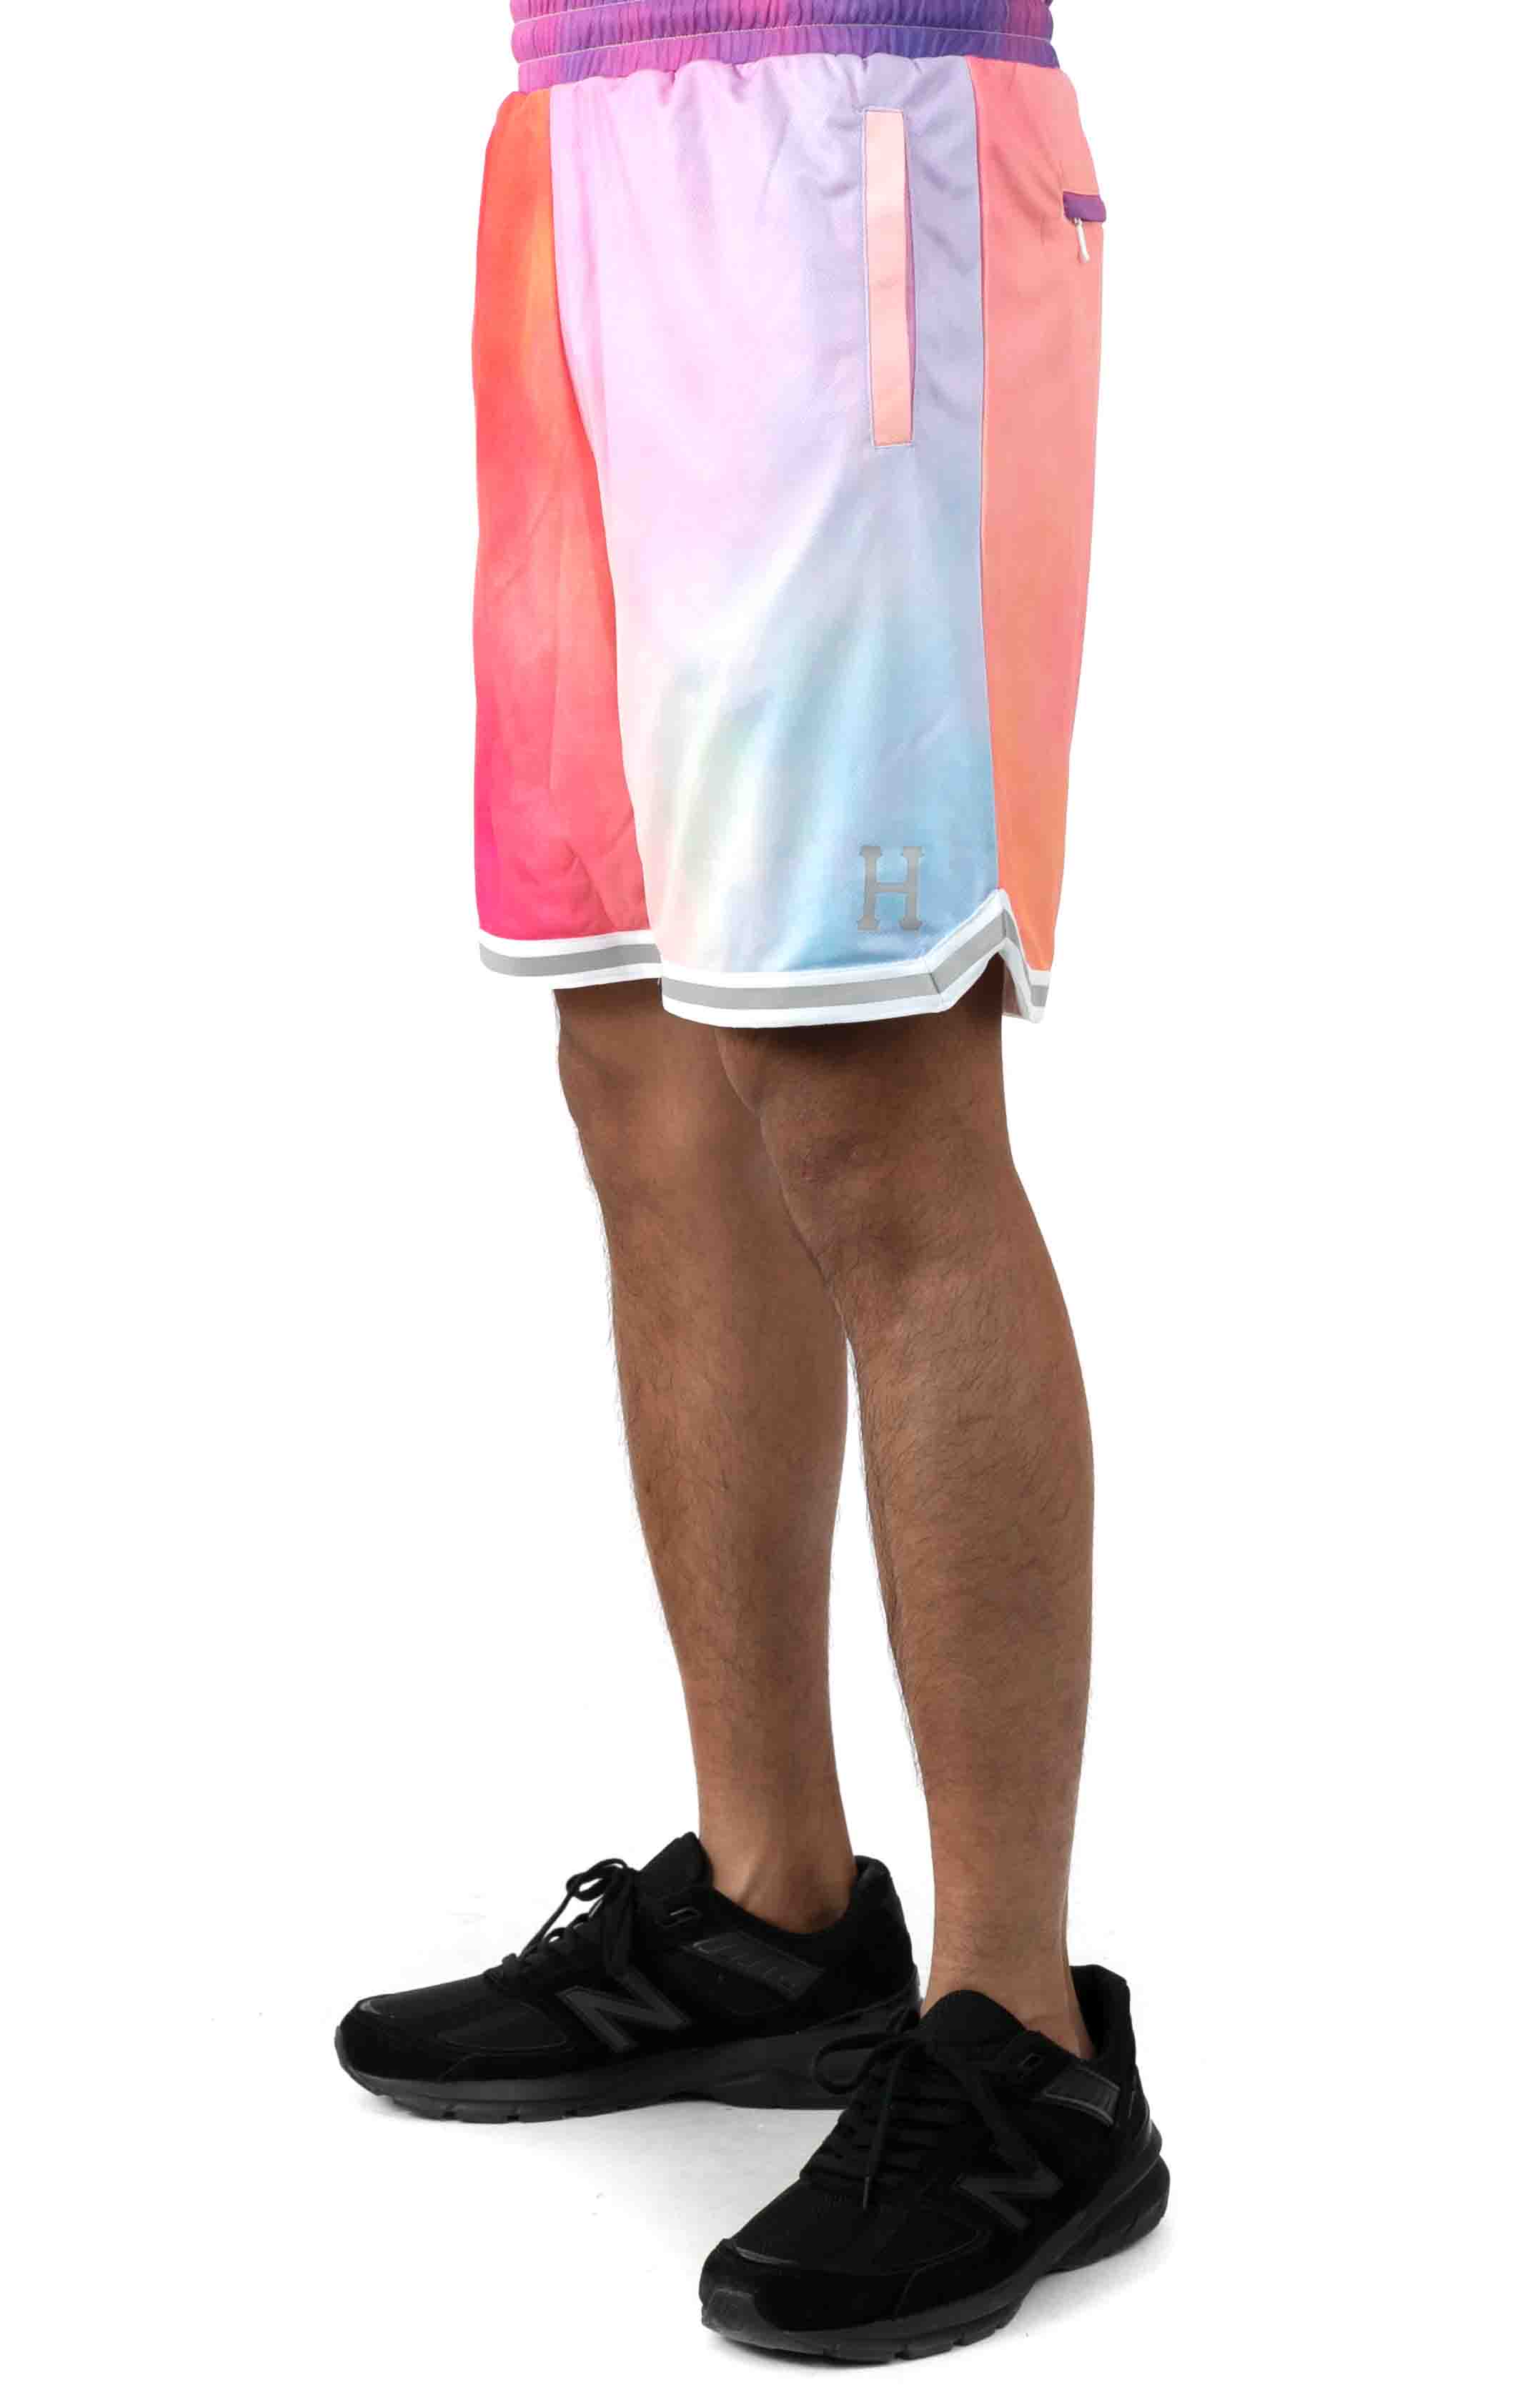 Classic H Reflex Basketball Shorts - Coral Pink